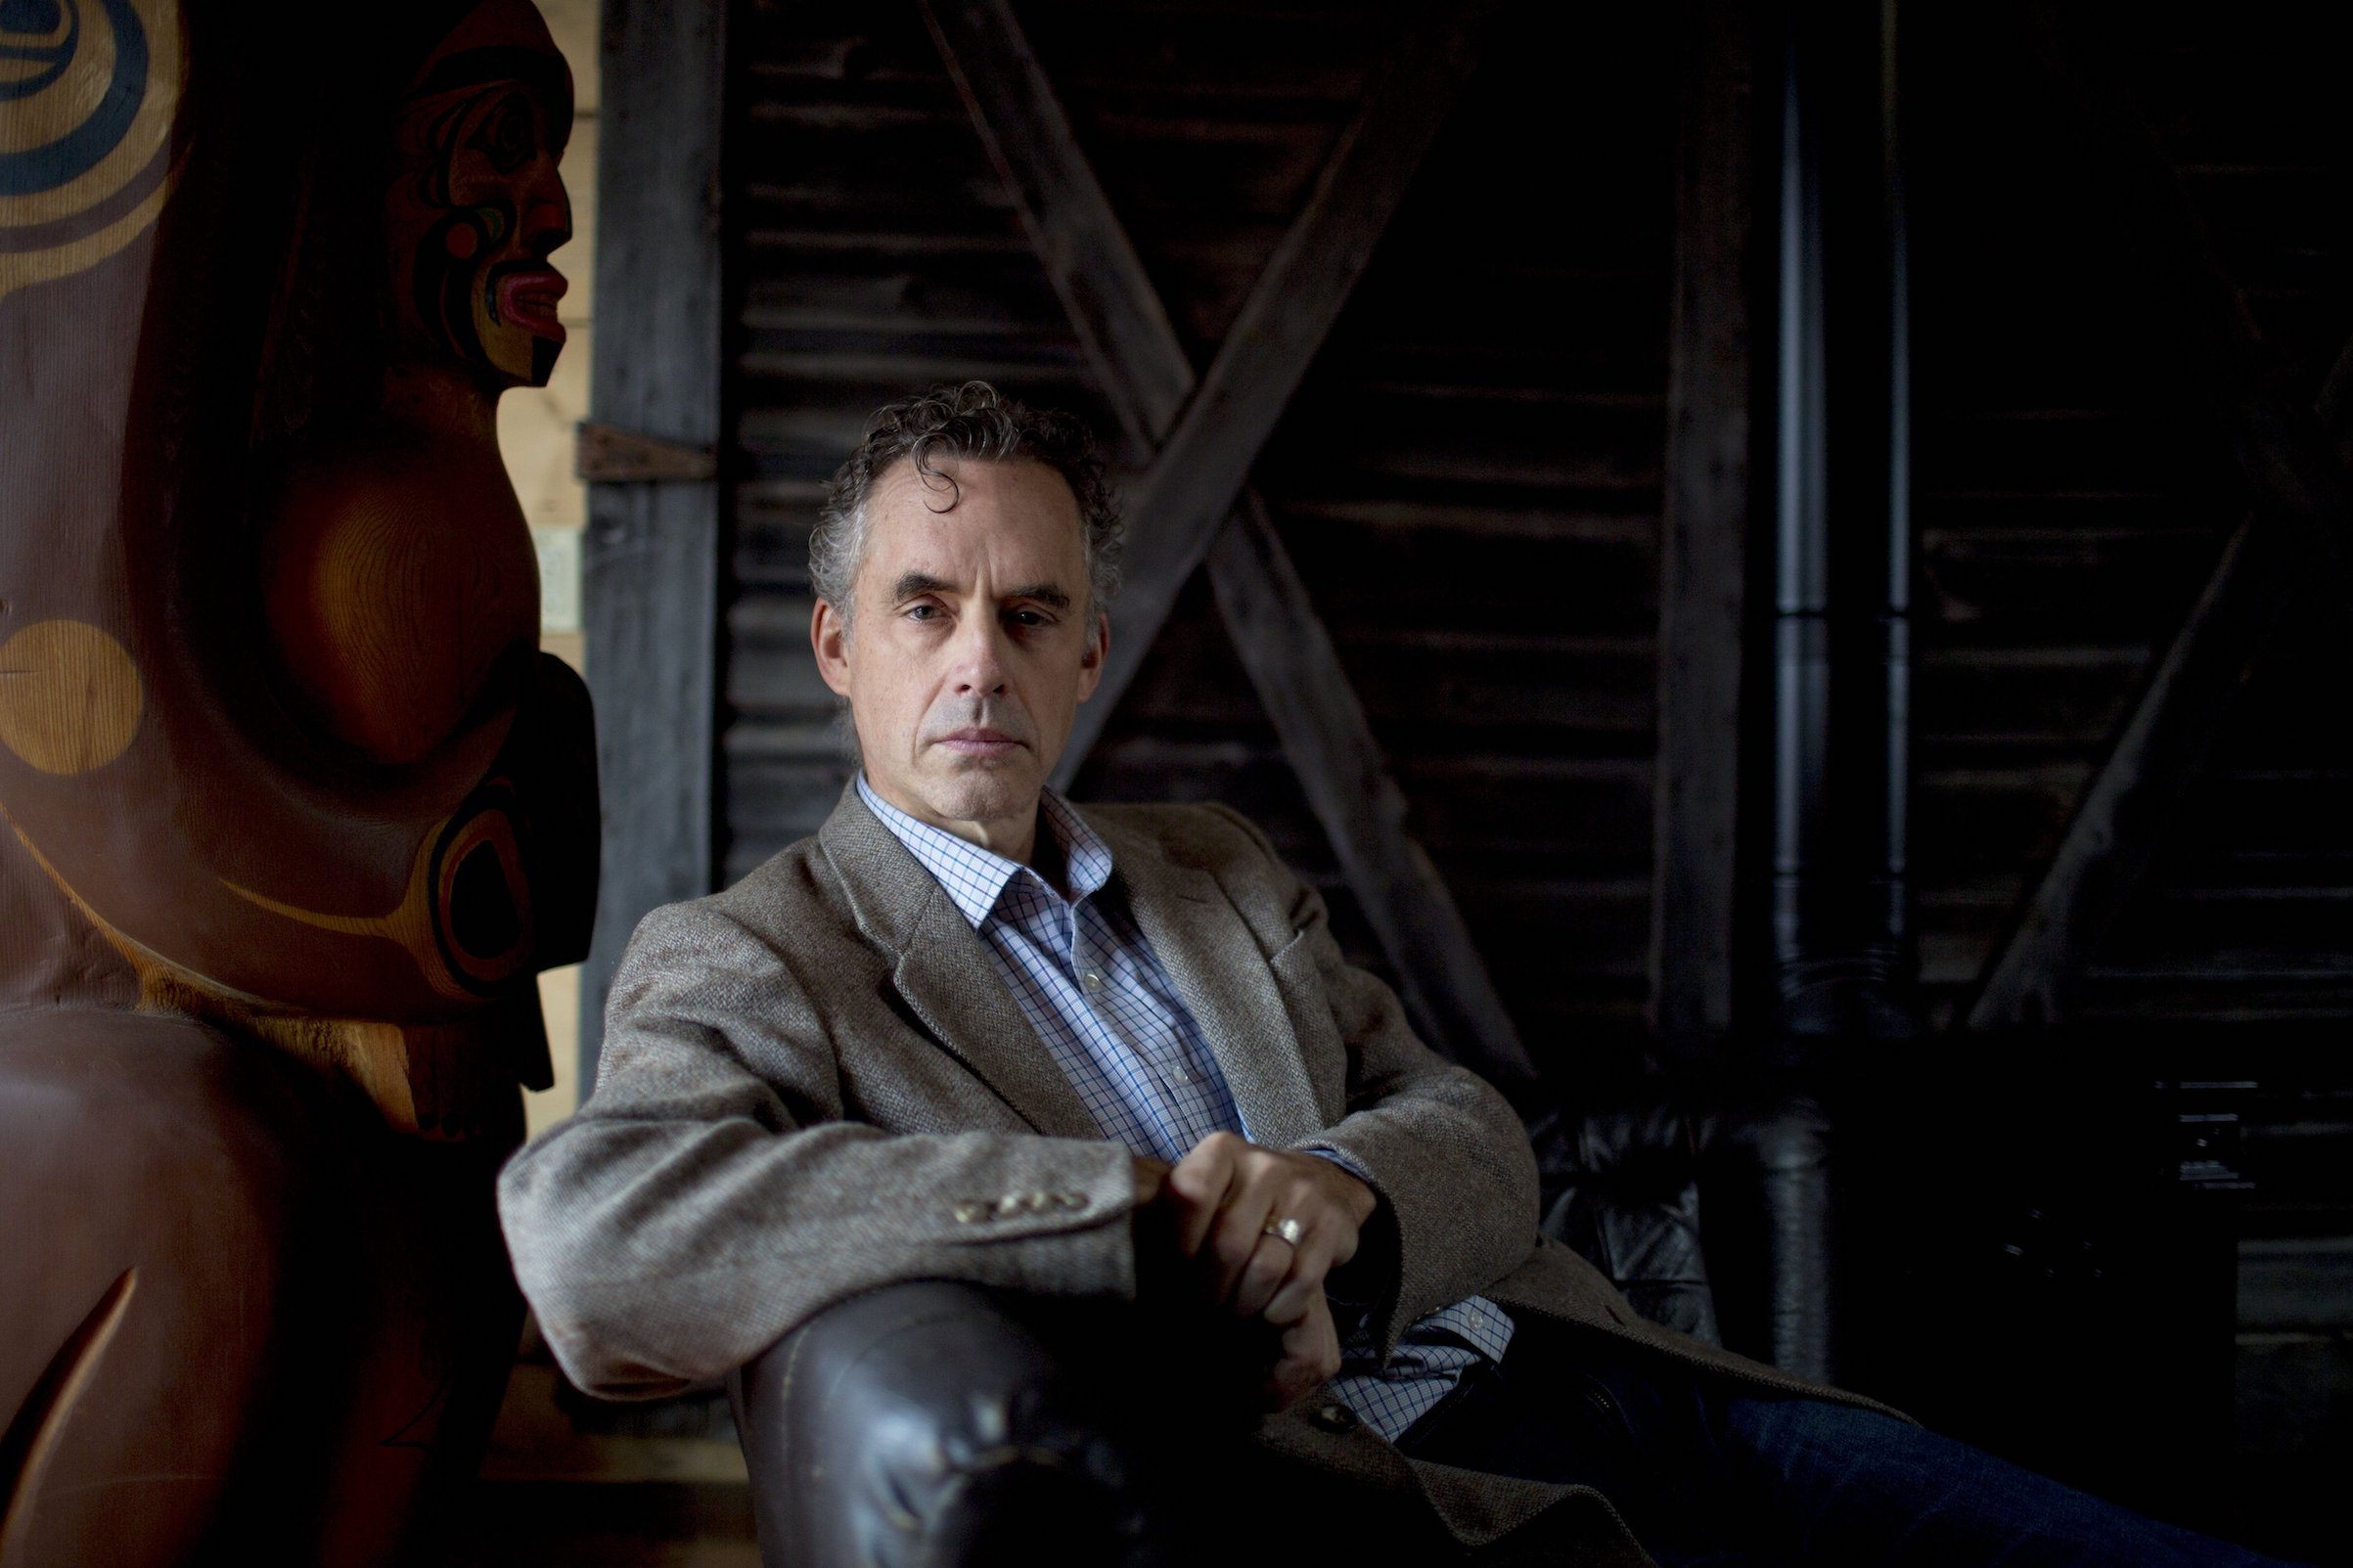 Dr. Jordan Peterson in Toronto, Ontario, Canada on Dec. 6, 2016.